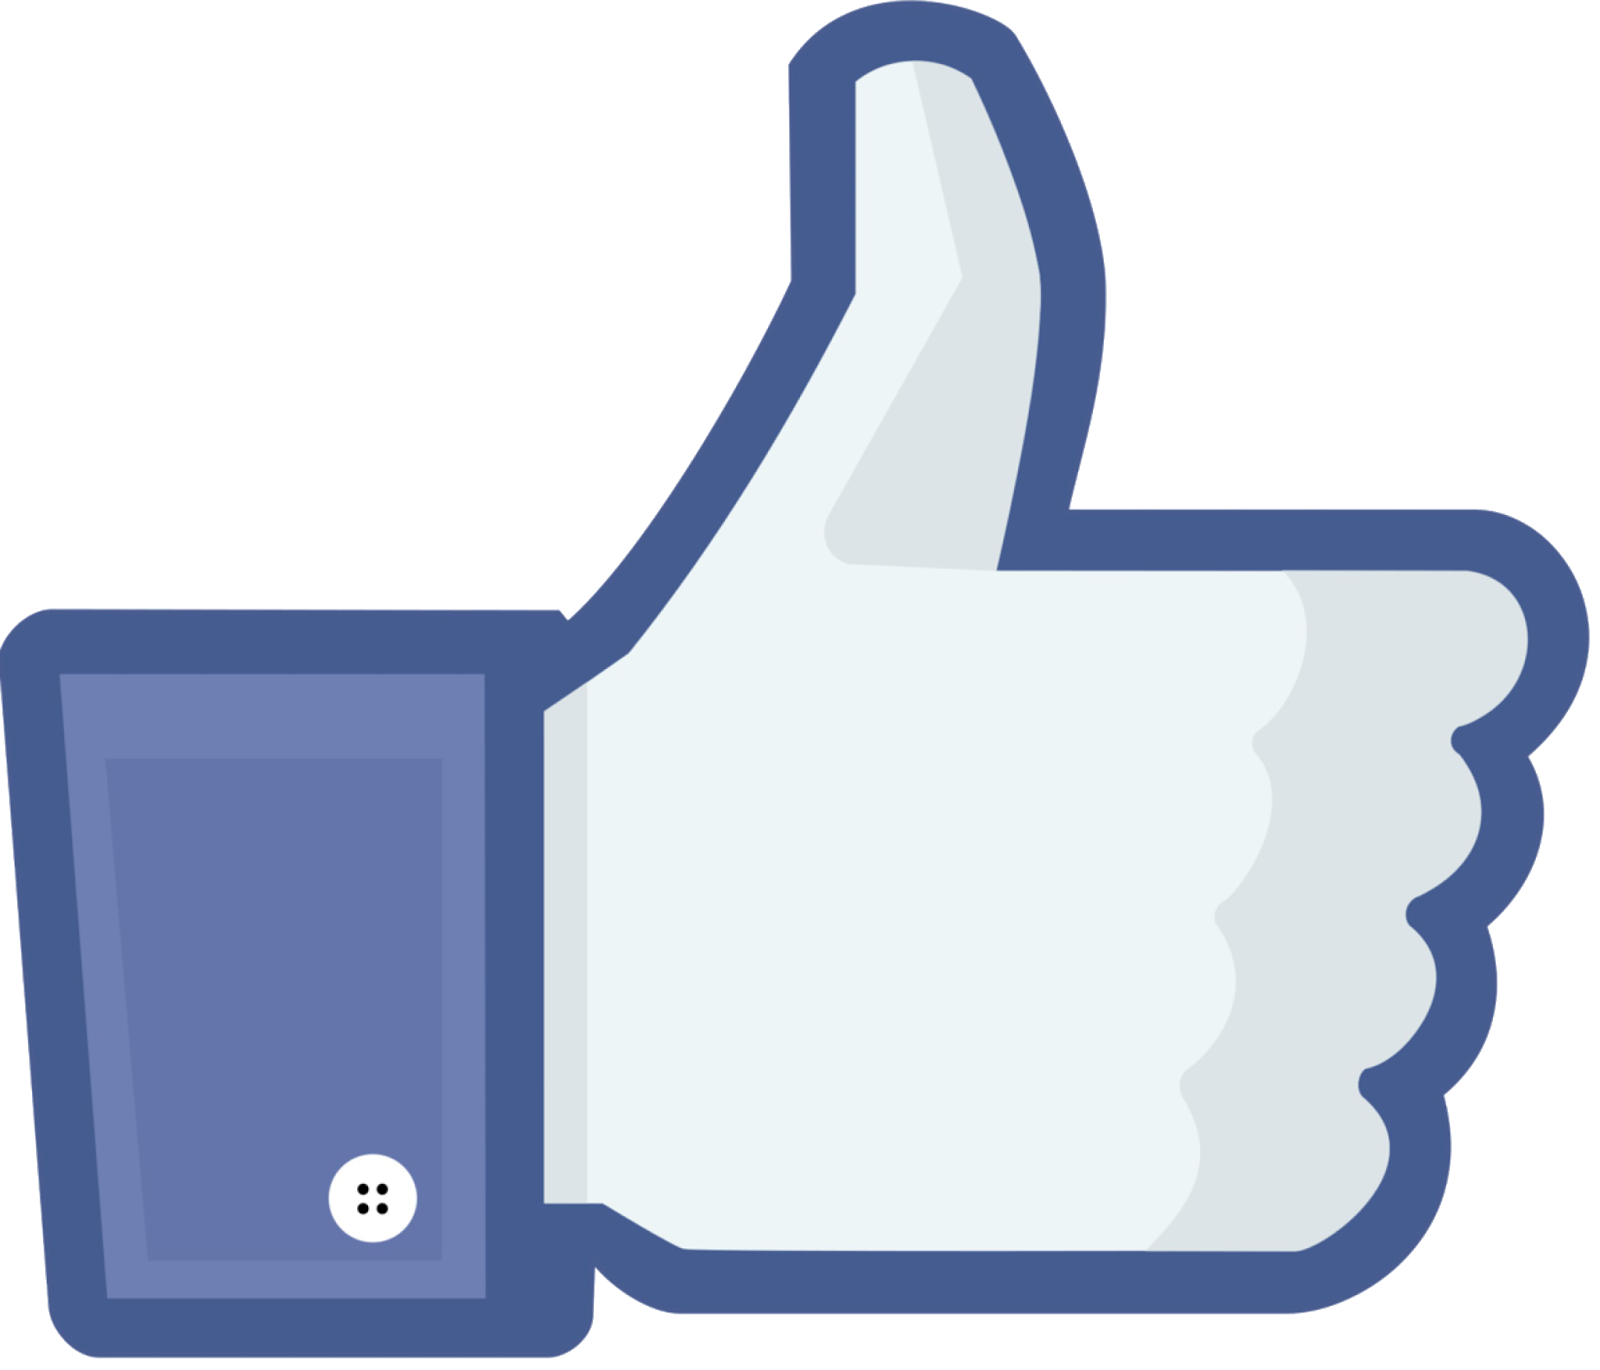 Facebook logo vector png. Like share transparent background